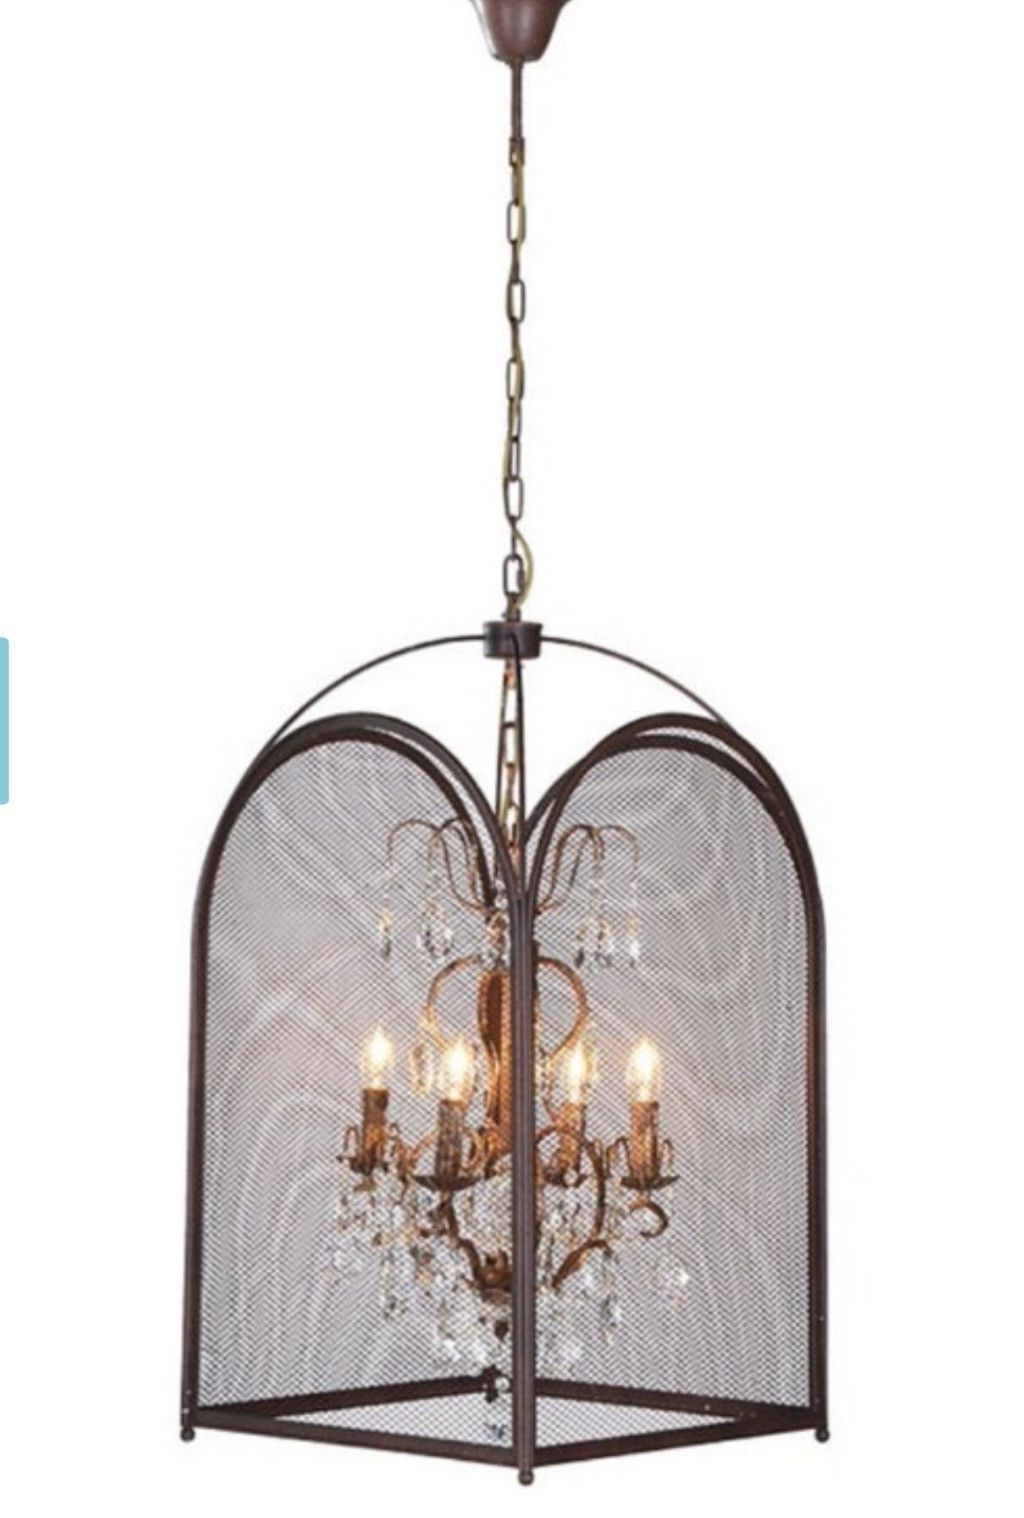 Caged Chandelier Within Favorite Large Statement Birdcage Vintage Industrial Shabby Chic Caged (View 7 of 15)